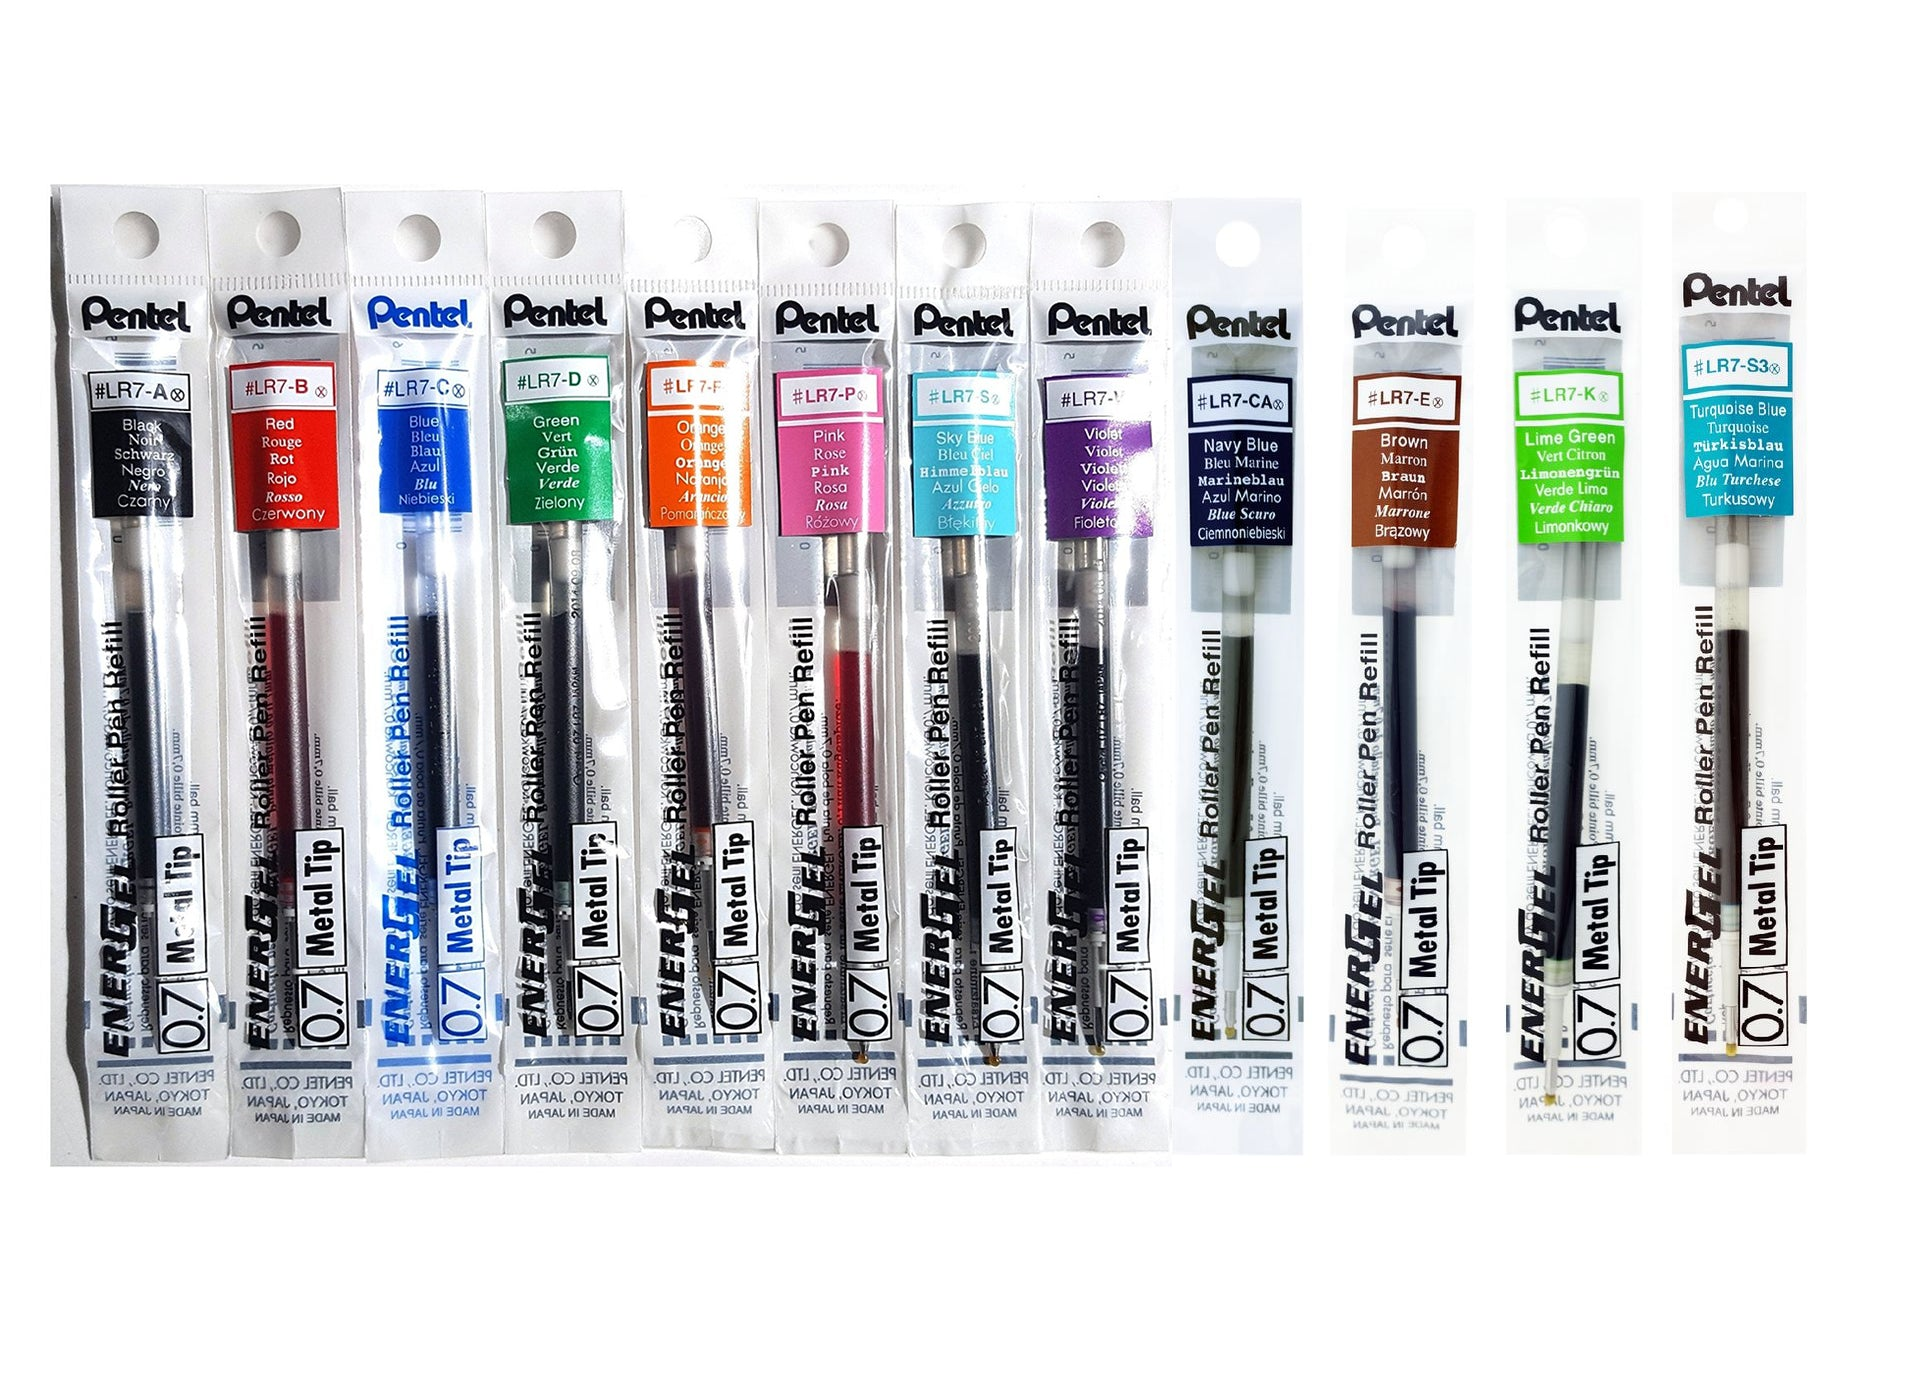 Pentel EnerGel Assorted Colors 0.7mm Metal Tip Gel Pen Refills (12pcs) - Assorted [LR7]